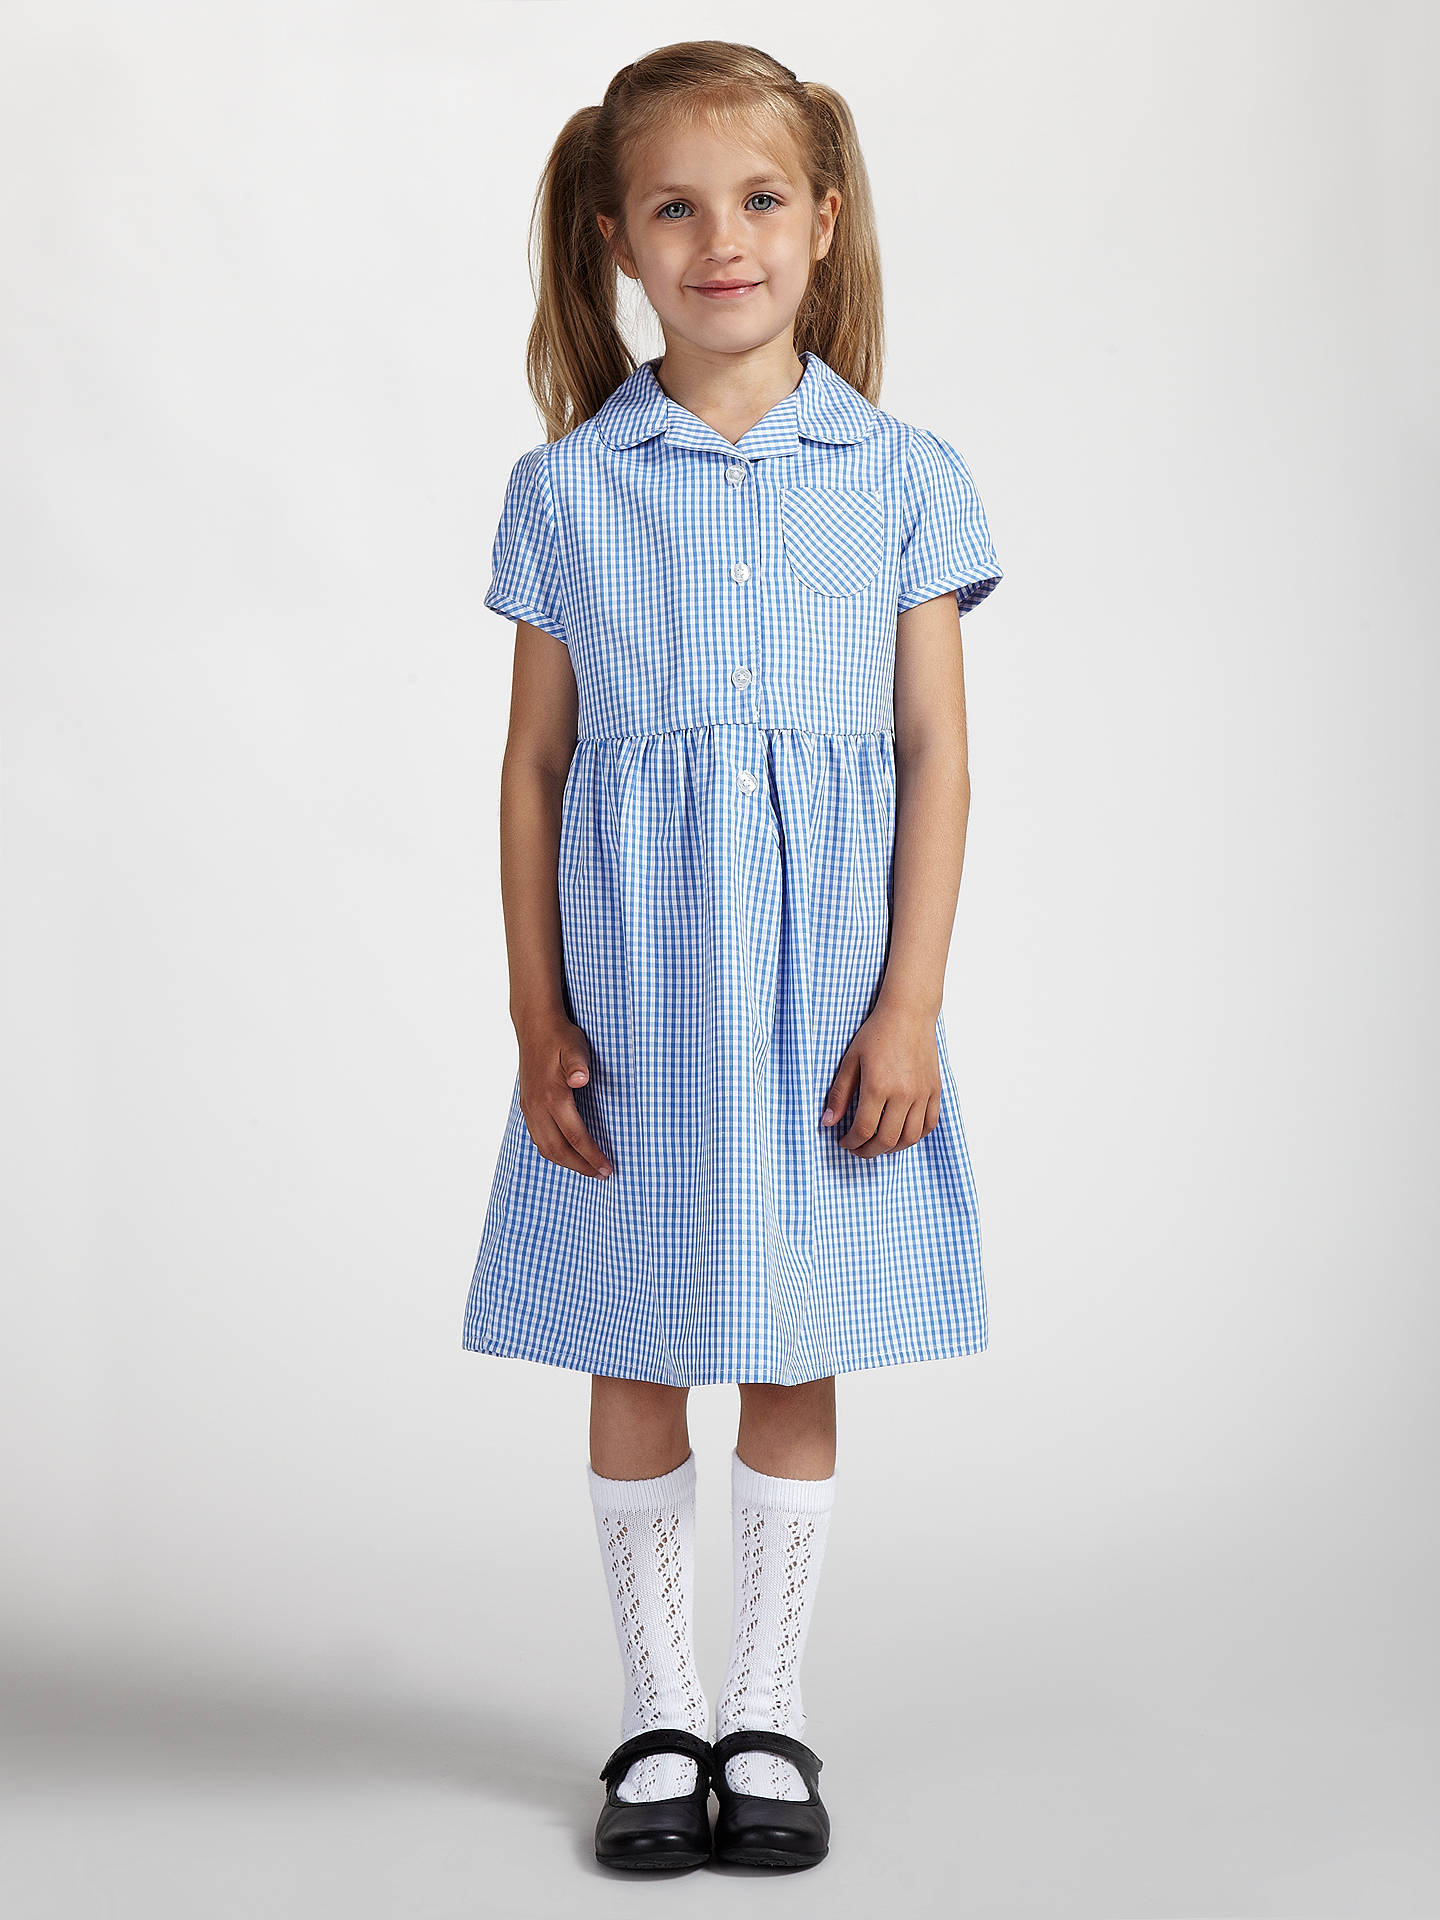 Buy John Lewis & Partners School Belted Gingham Checked Summer Dress, Blue, 4 Years Online at johnlewis.com